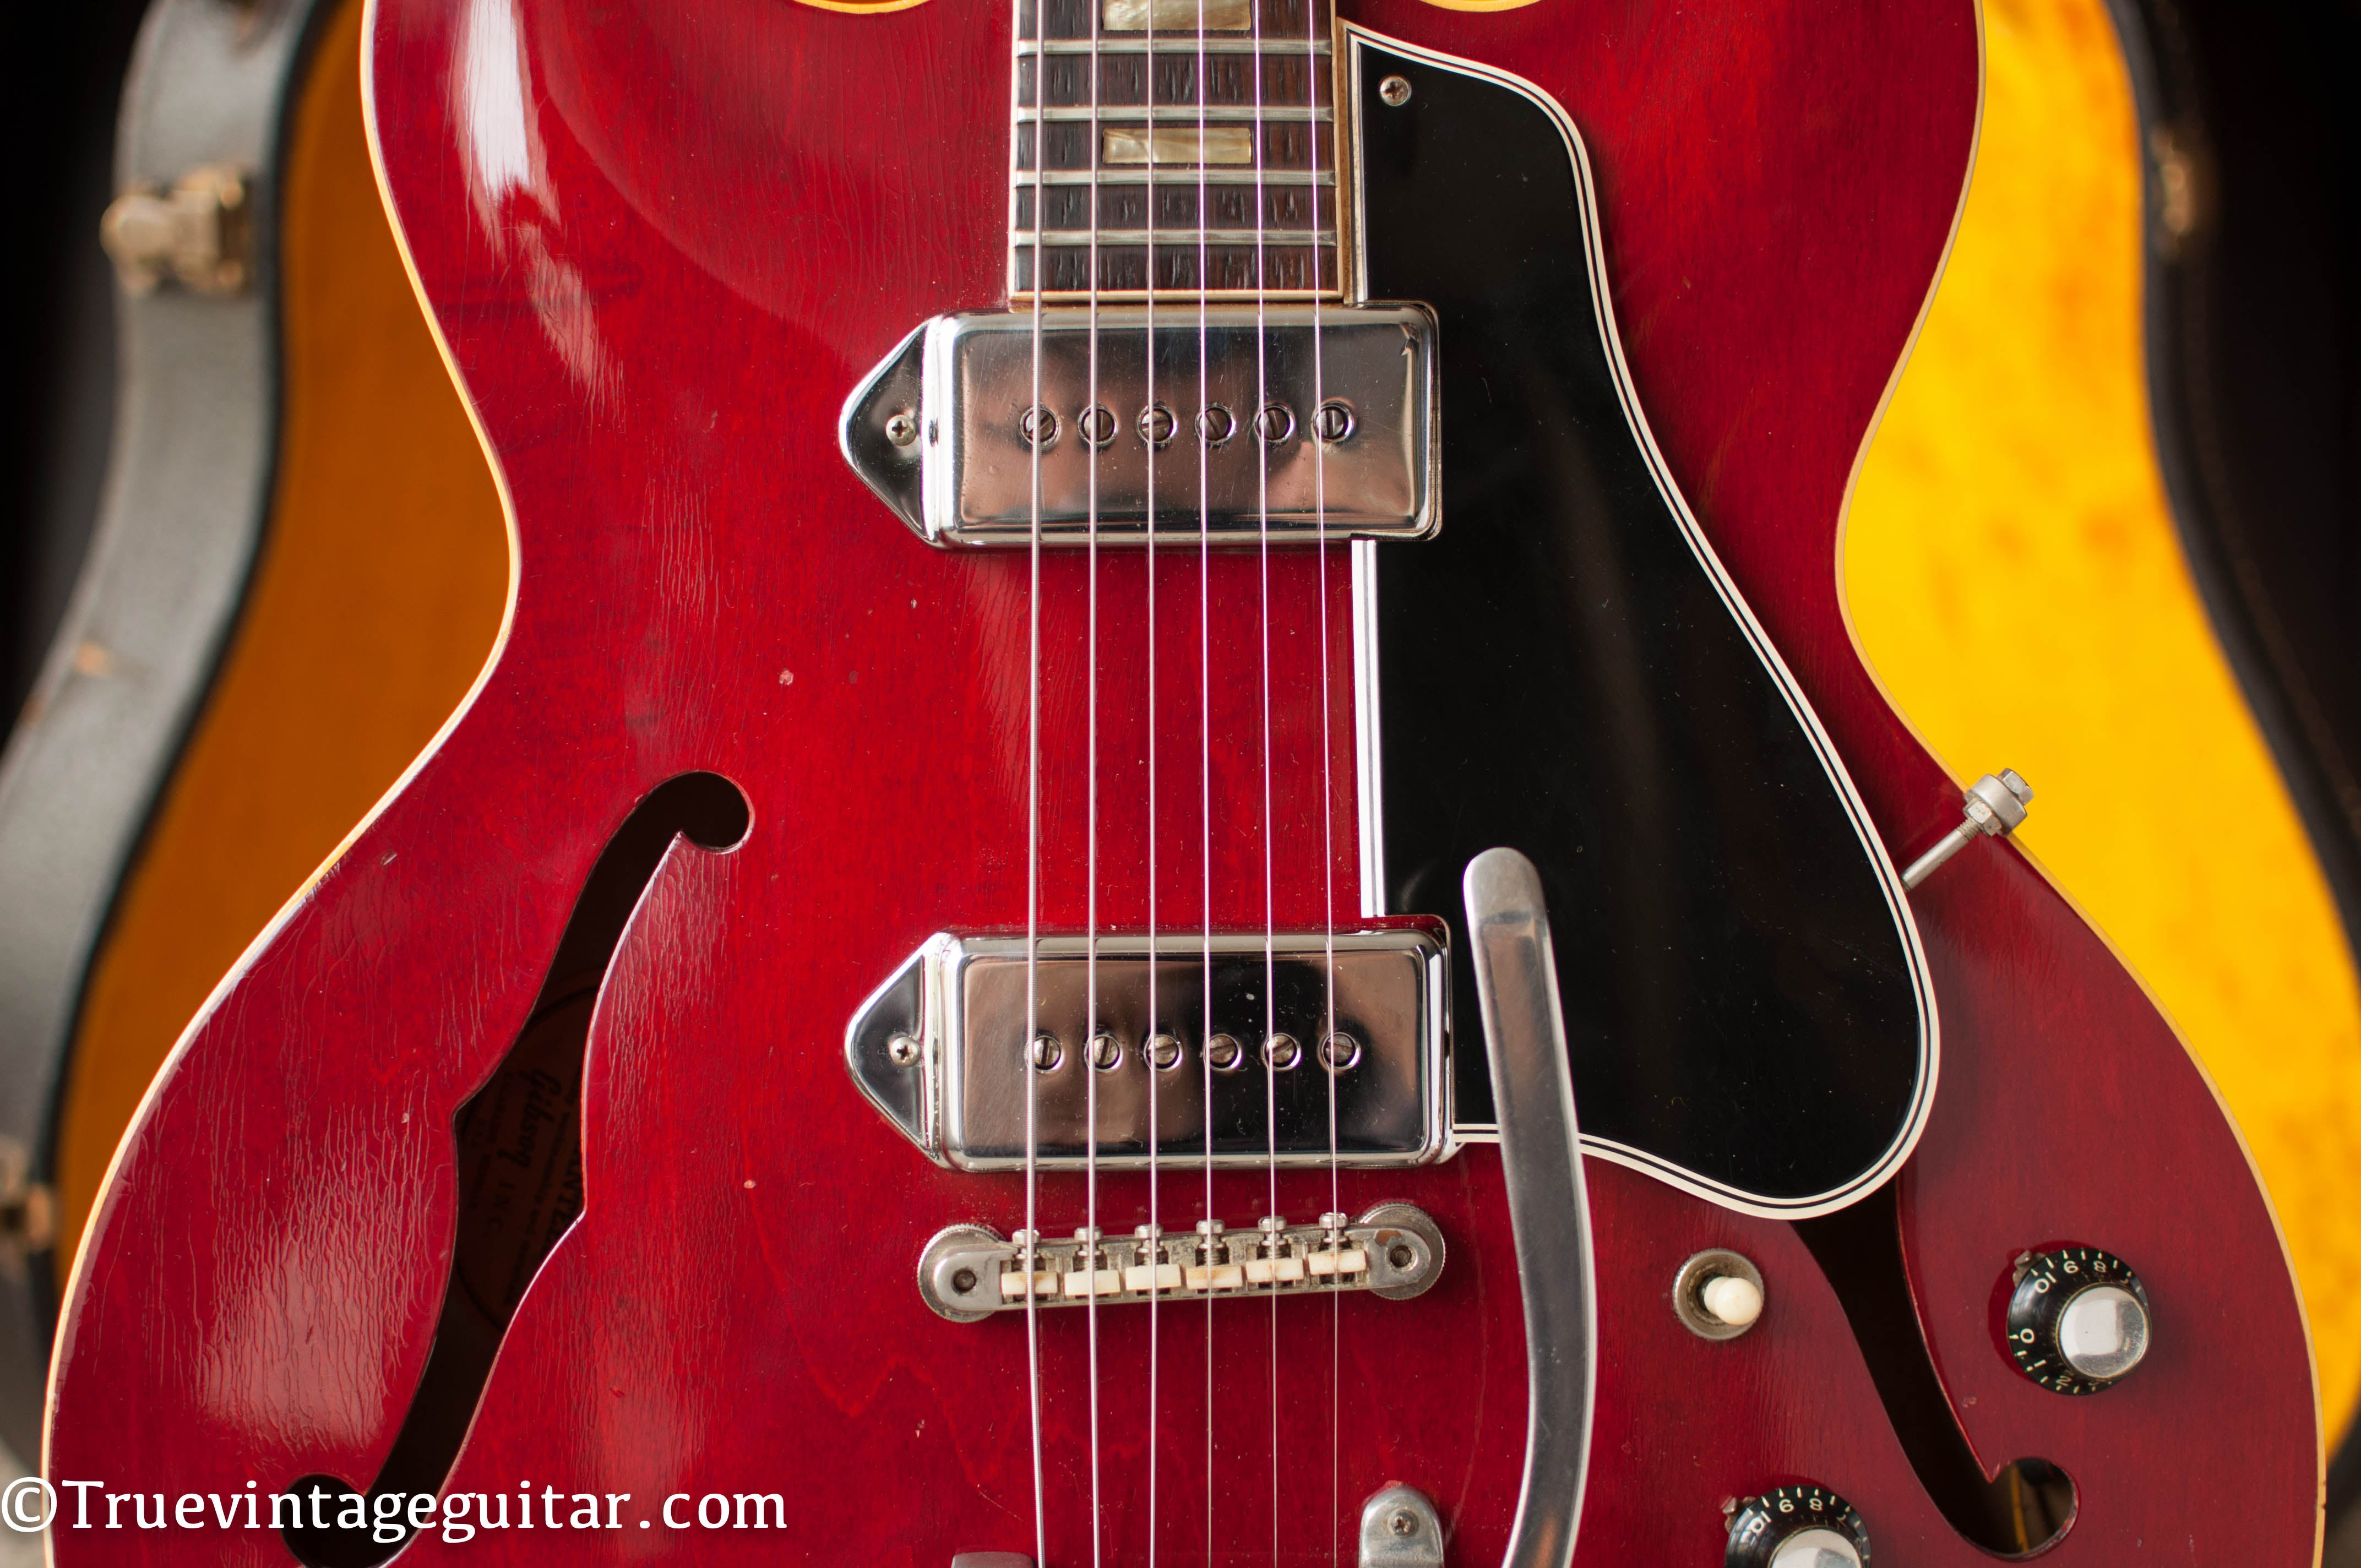 P-90 single coil pickups, 1964 Gibson ES-330